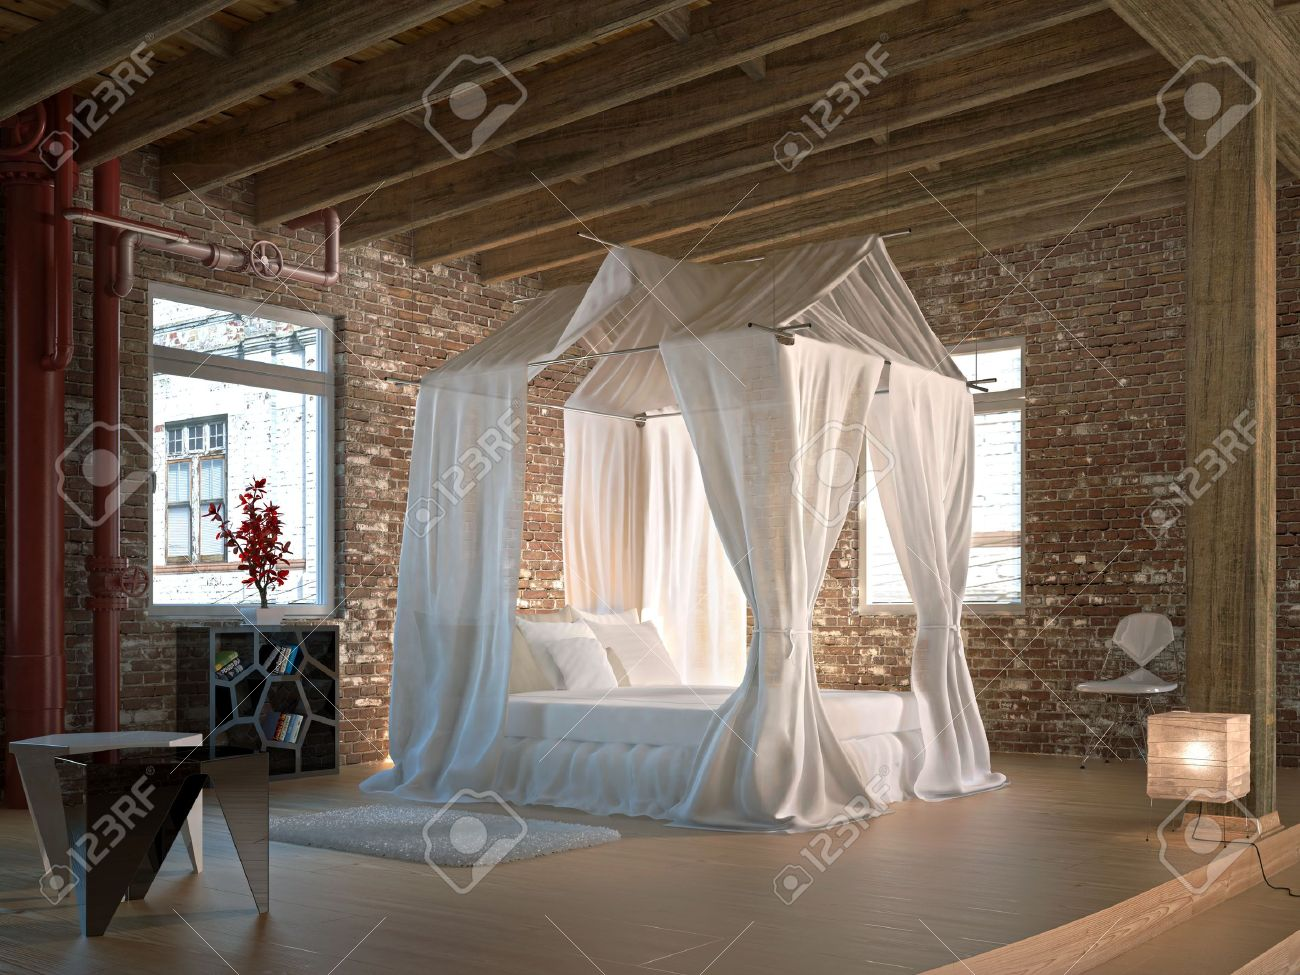 Luxus Schlafzimmer Mit Himmelbett - Stock Photo